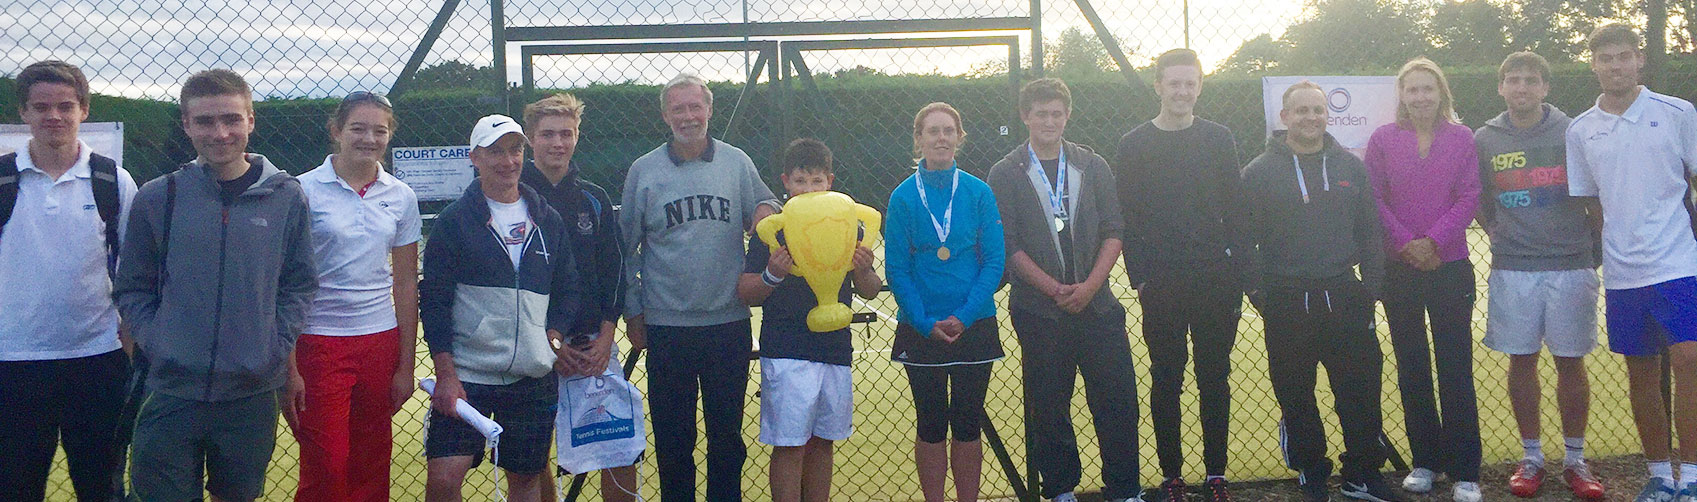 York Tennis Club Teams and Competitions